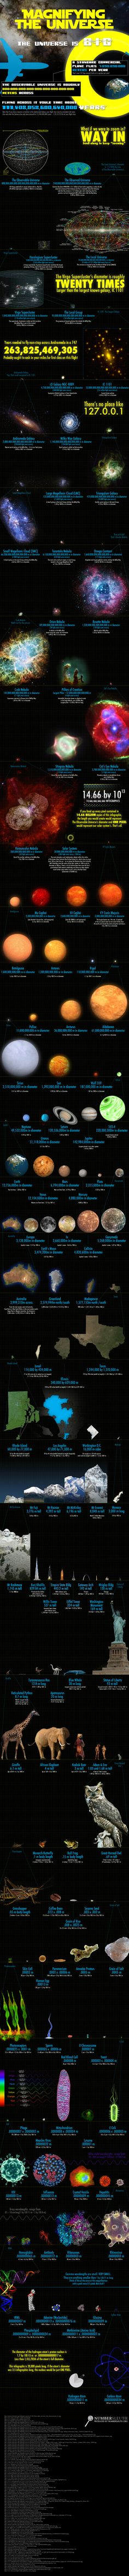 AMAZING!! how-big-is-the-universe-large